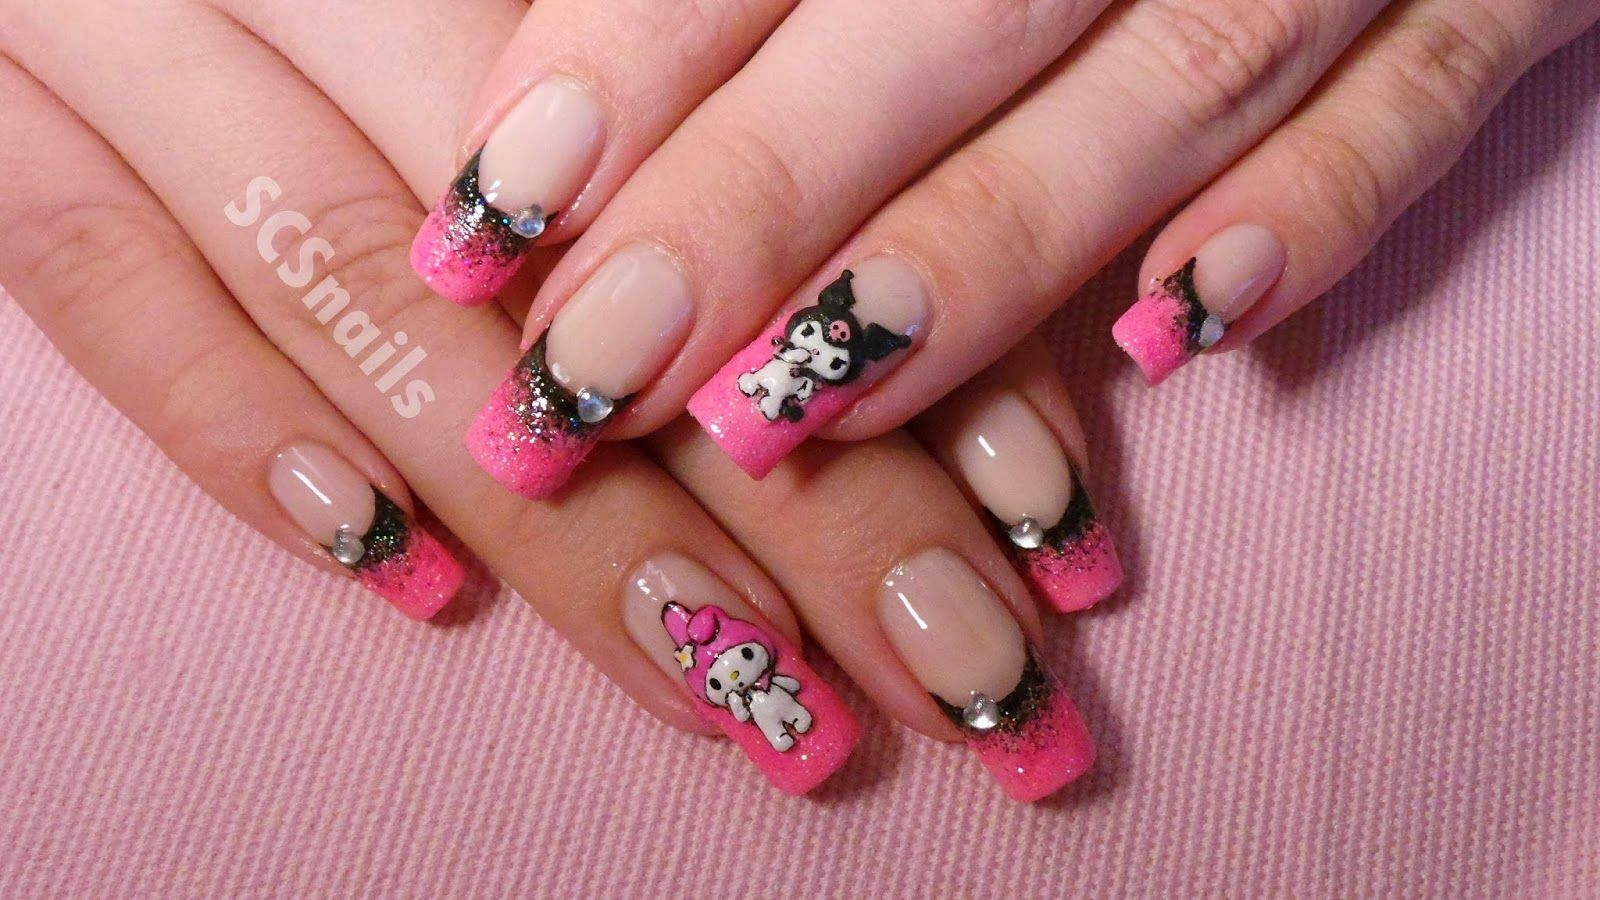 Sanrio Nail Art With Kuromi And My Melody 3d Acrylic Sanrio Characters Minimalist Nails Pretty Acrylic Nails Grunge Nails